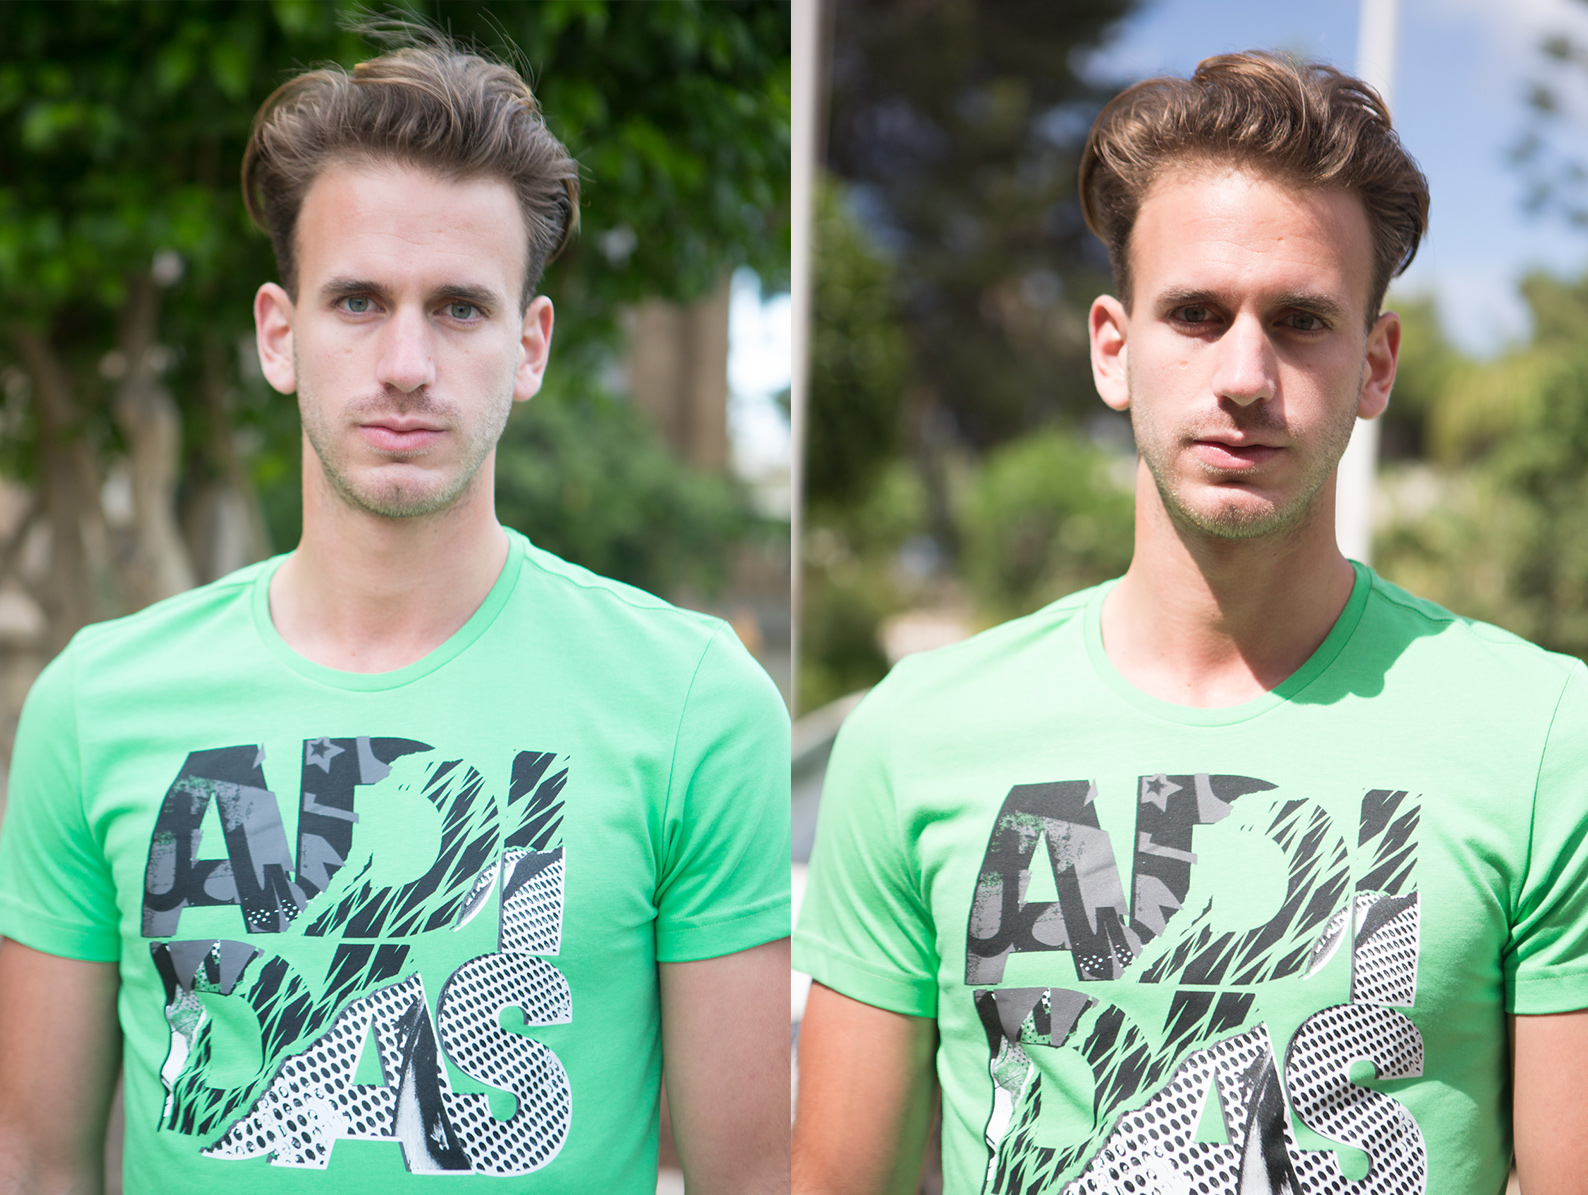 The left image is shot in the shade of a nearby building, whereas the image on the right is not in direct sunlight